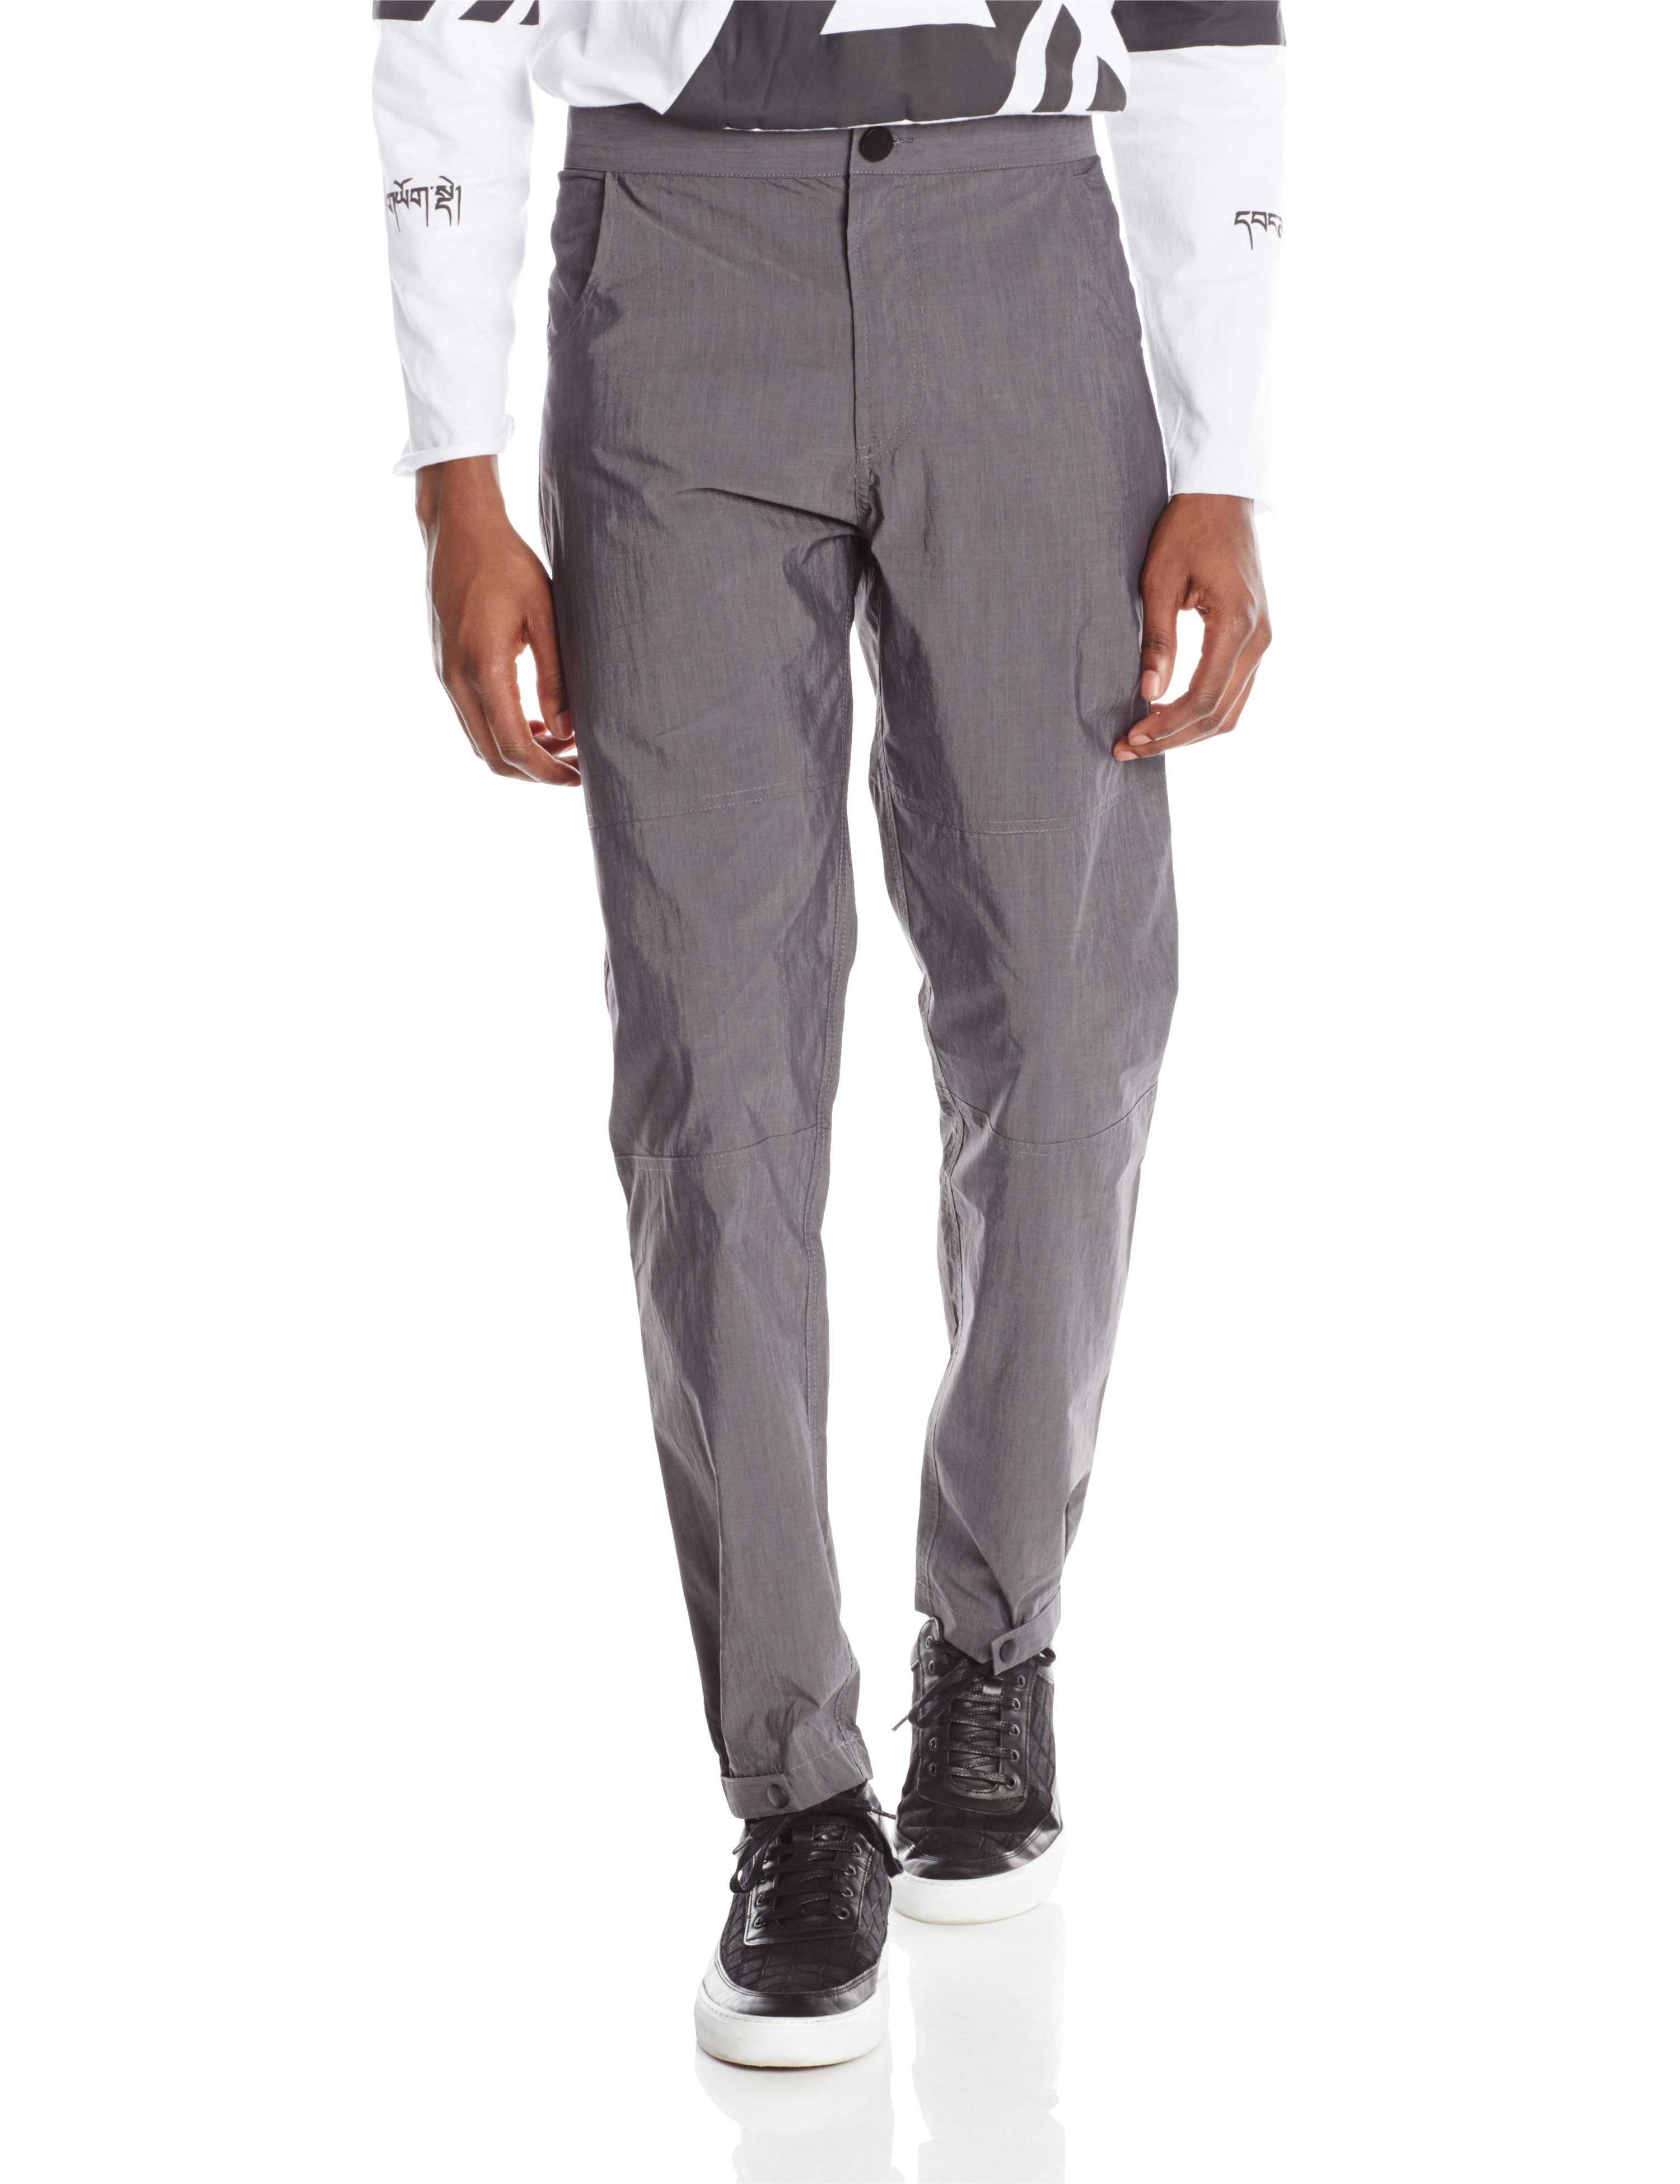 FULL-HACKER PANT DARK GRAY.0406